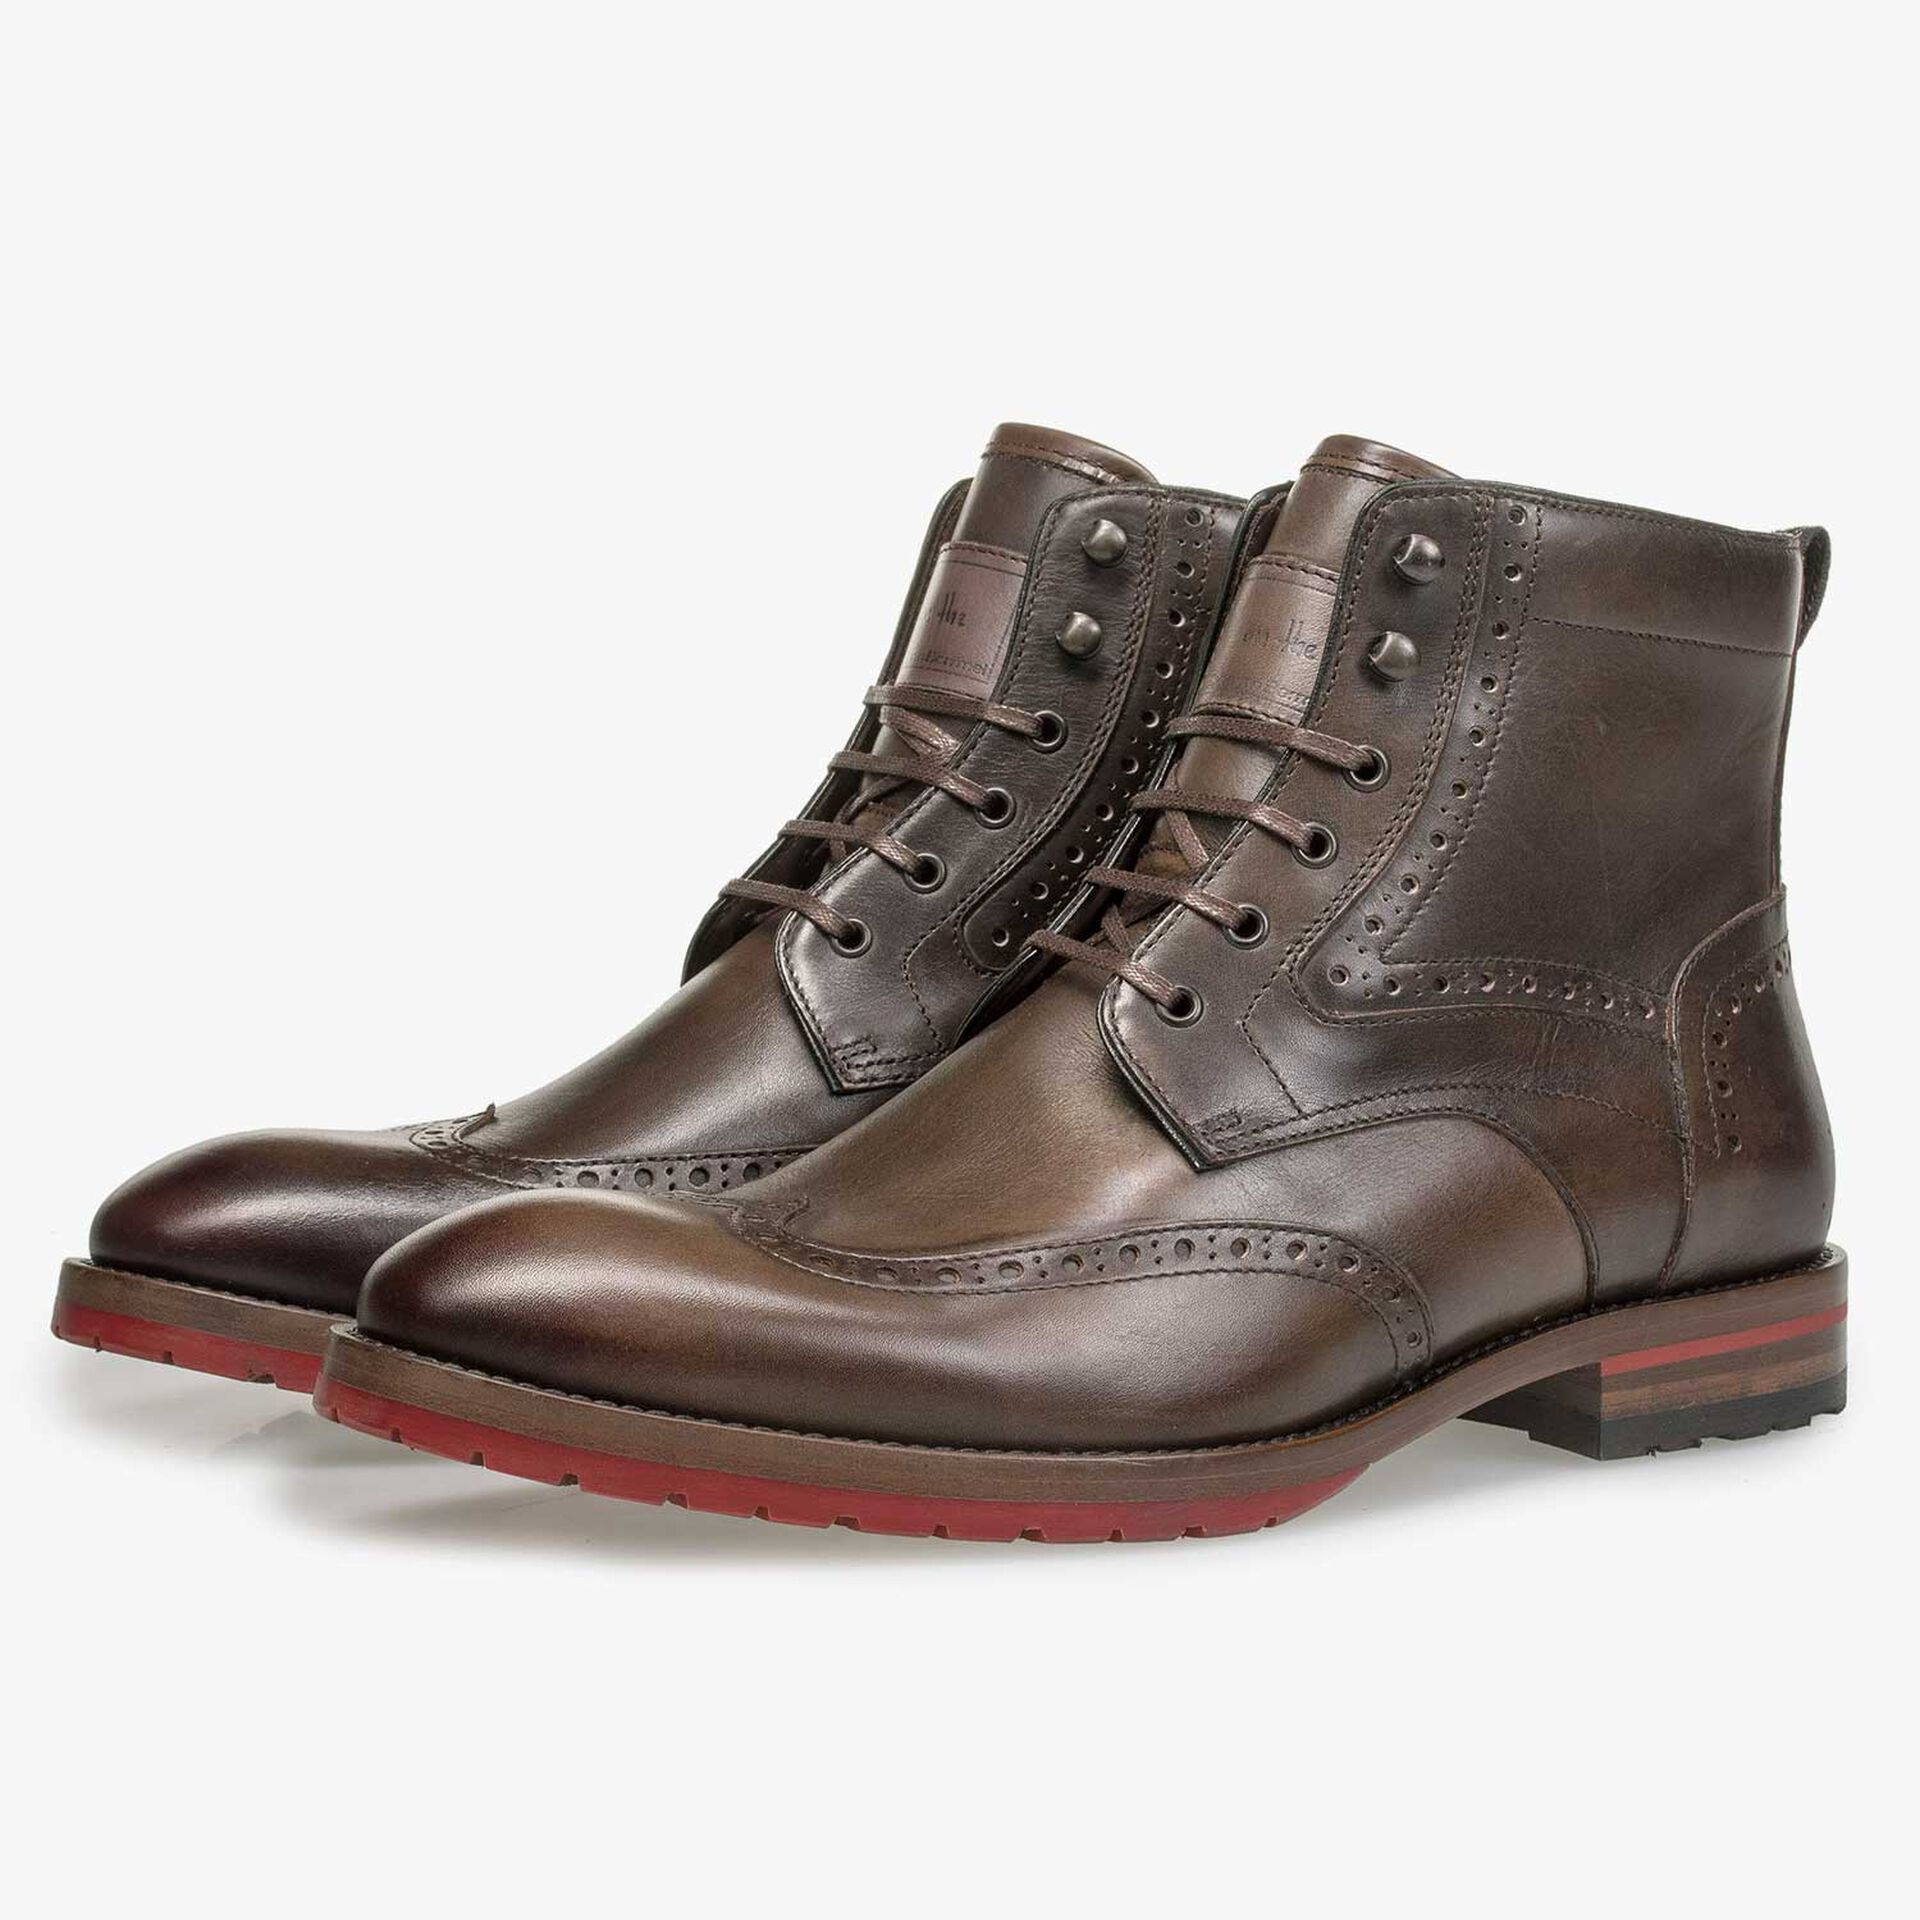 Dark brown calf leather brogue lace boot